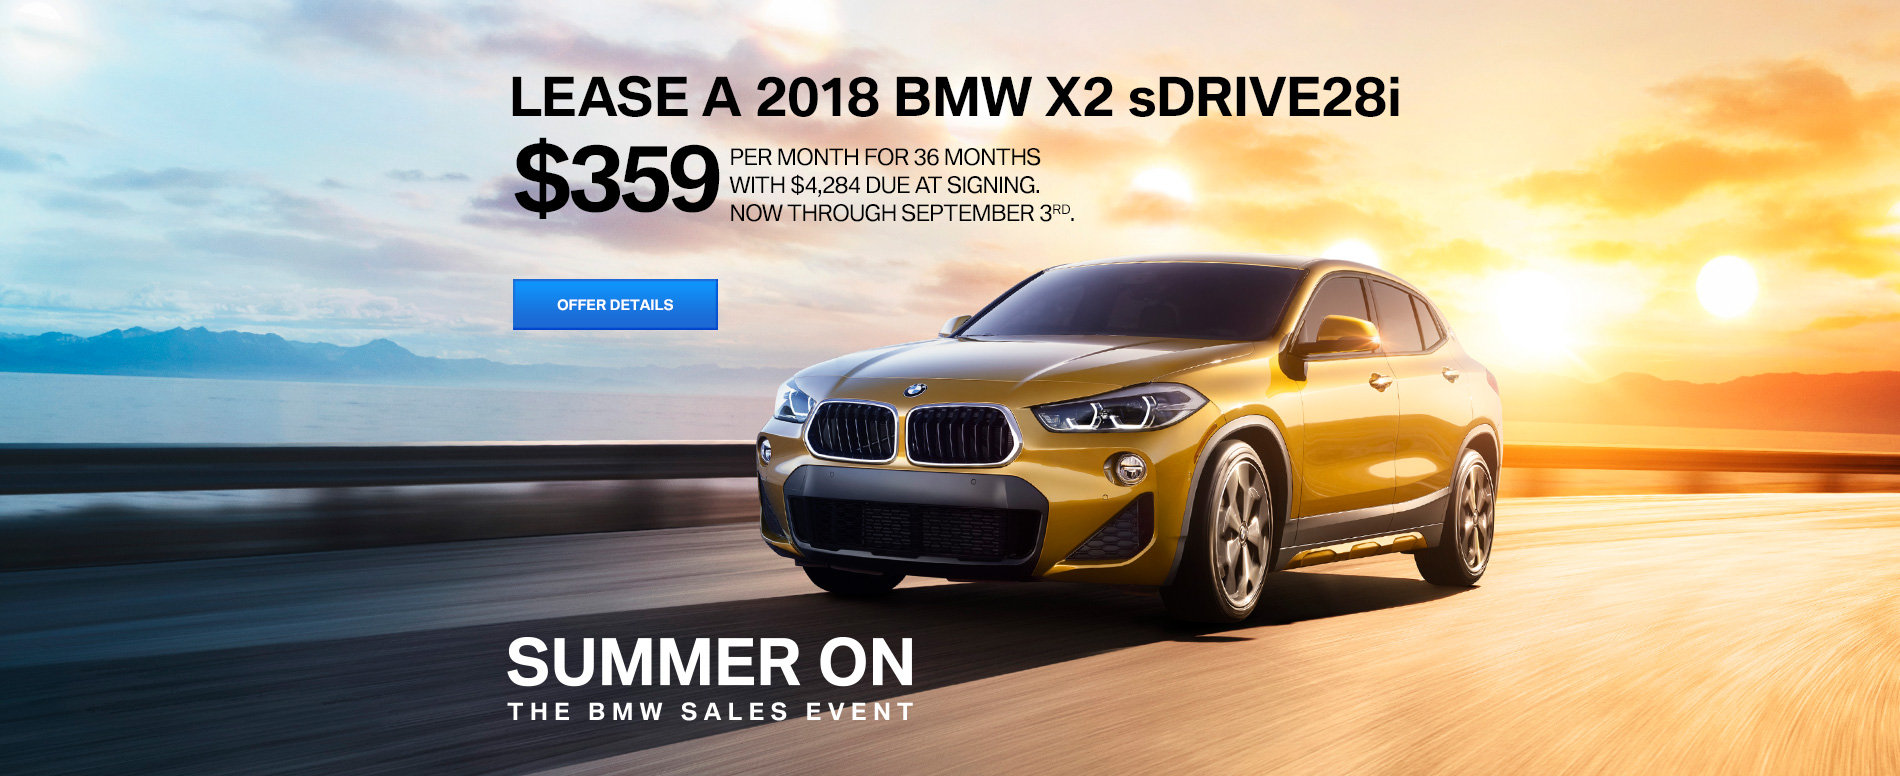 LEASE A 2018 X2 sDRIVE28i FOR $359 /MO FOR 36 MONTHS.